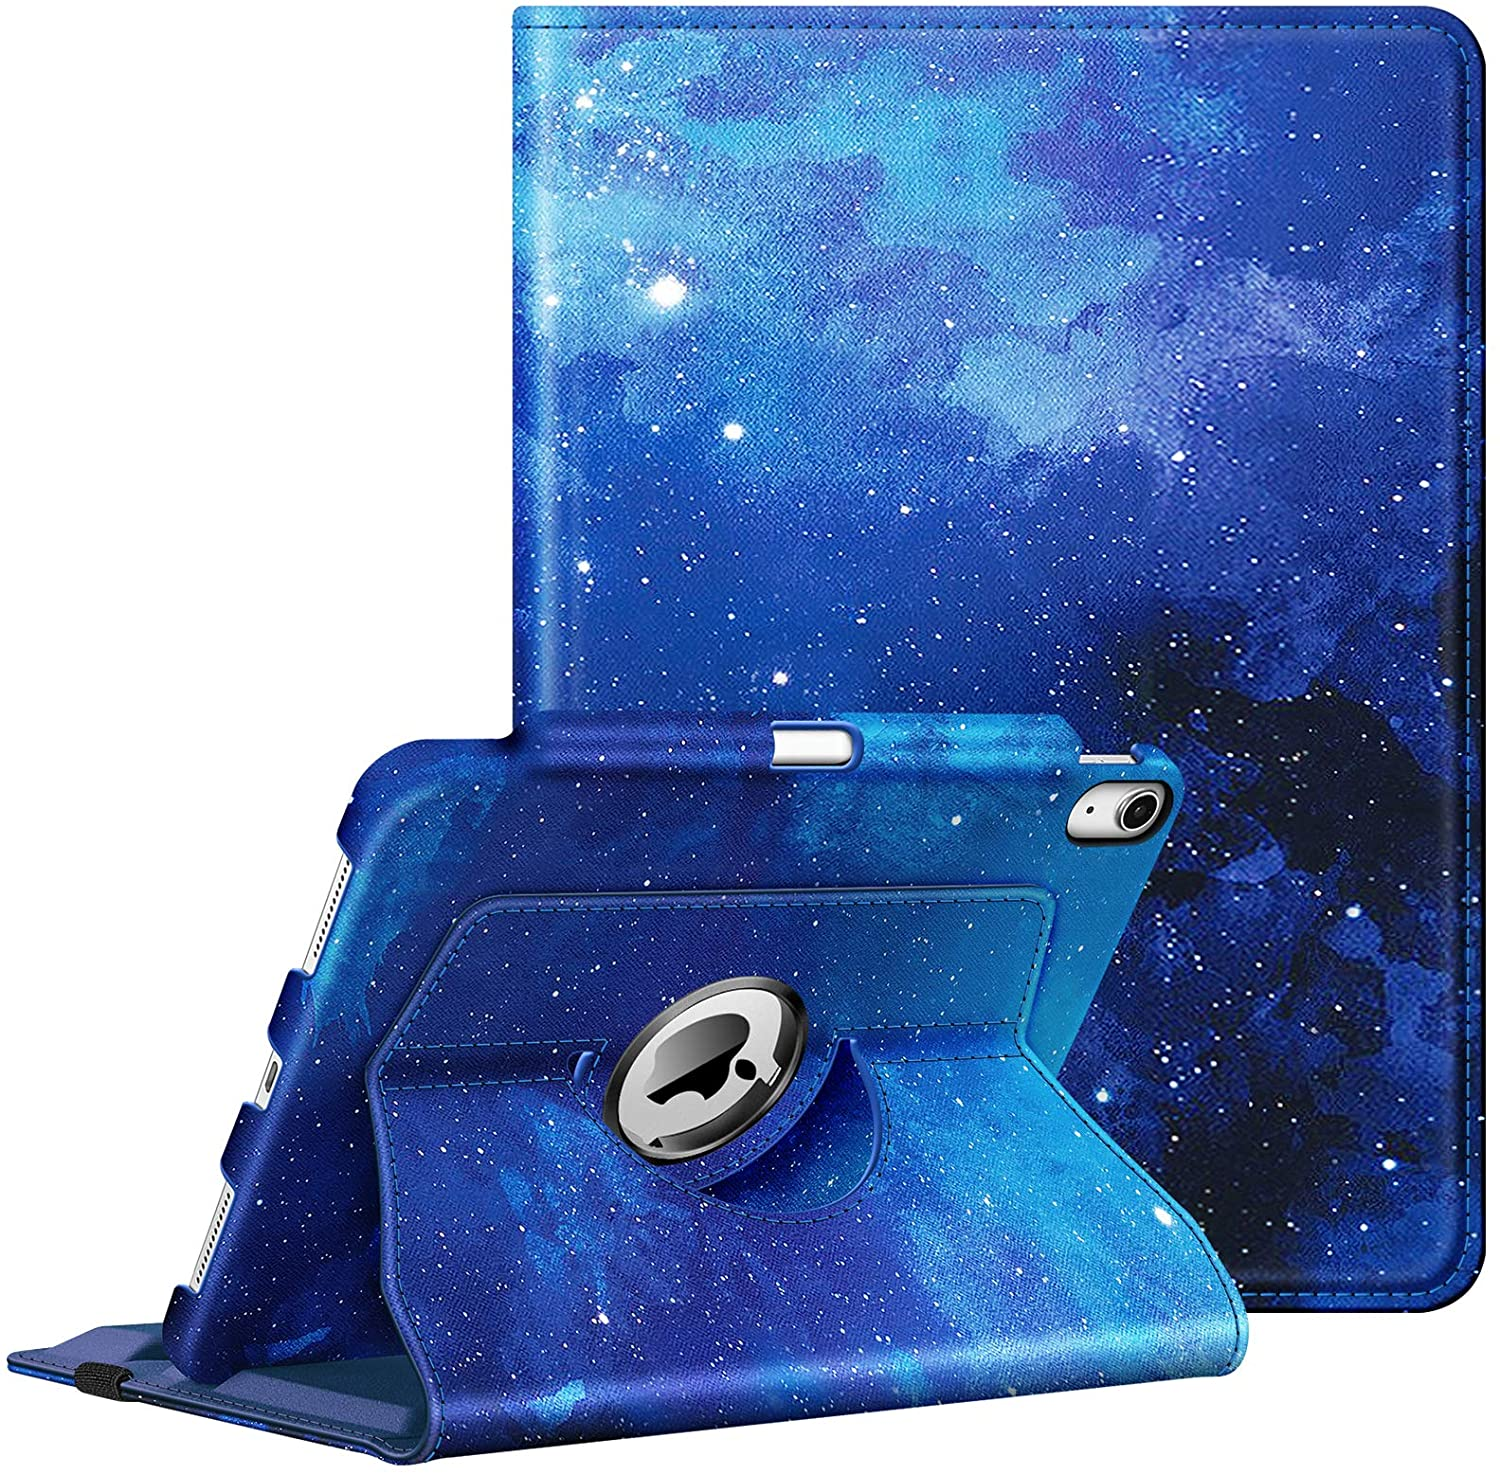 Fintie Case for iPad Air 4 10.9 Inch 2020 with Pencil Holder [Support 2nd Gen Pencil Charging] - 360 Degree Rotating Stand Cover with Auto Sleep/Wake for iPad Air 4th Generation, Starry Sky